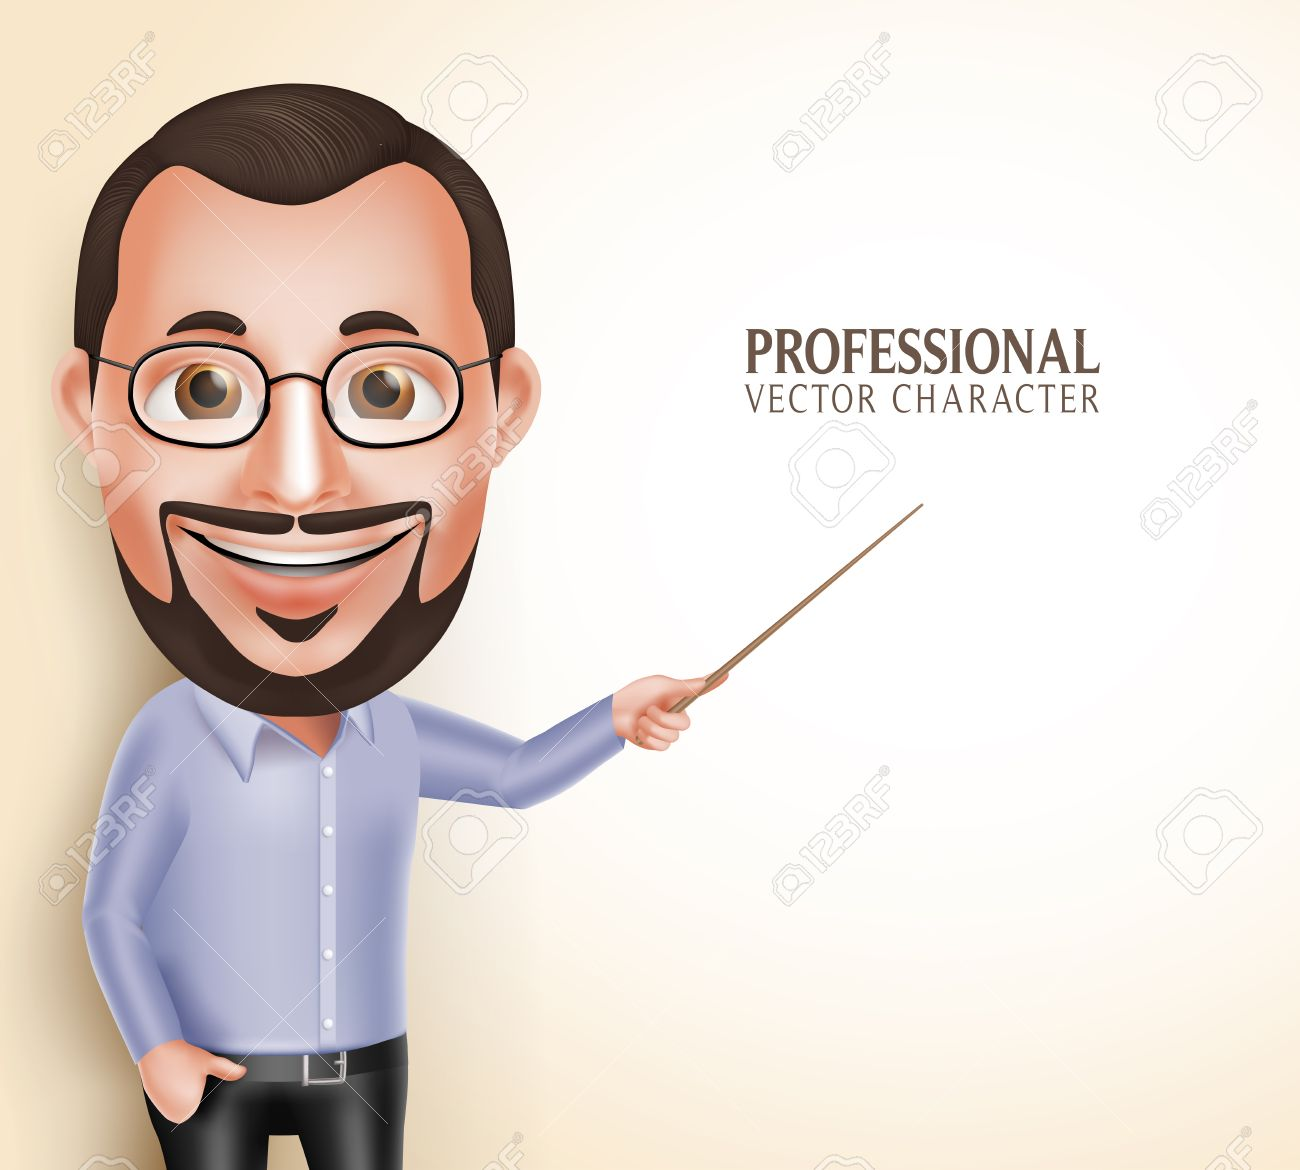 3D Realistic Professional Old Professor Teacher Man Character Speaking Pointing Blank Space for Message Isolated in White Background. Illustration - 50500000